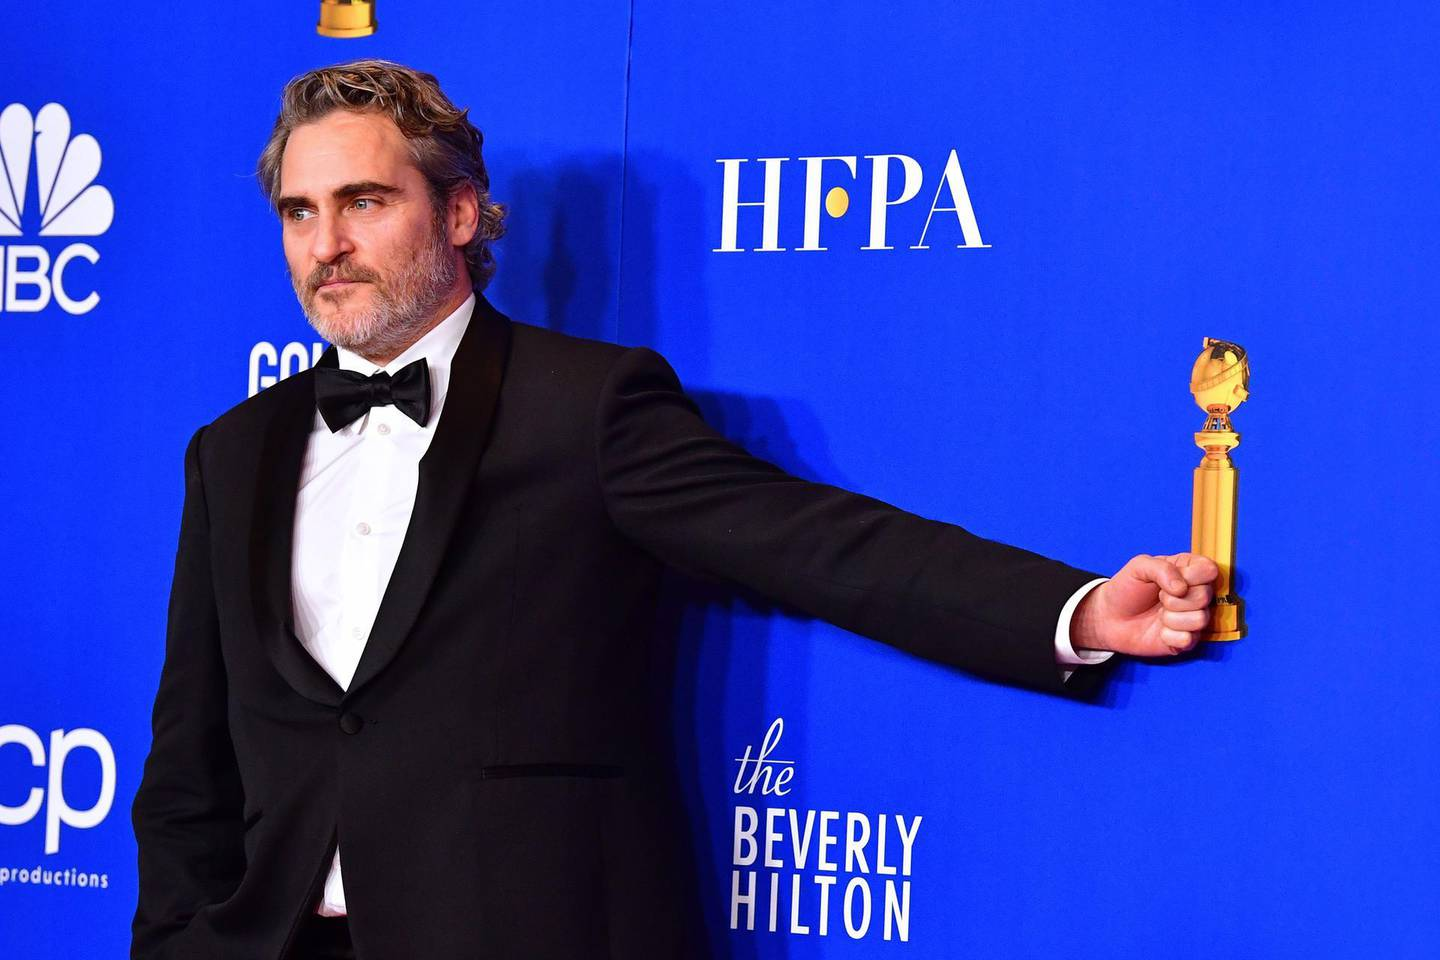 US actor Joaquin Phoenix poses in the press room after winning the award for Best Performance by an Actor in a Motion Picture - Drama during the 77th annual Golden Globe Awards on January 5, 2020, at The Beverly Hilton hotel in Beverly Hills, California. / AFP / FREDERIC J. BROWN